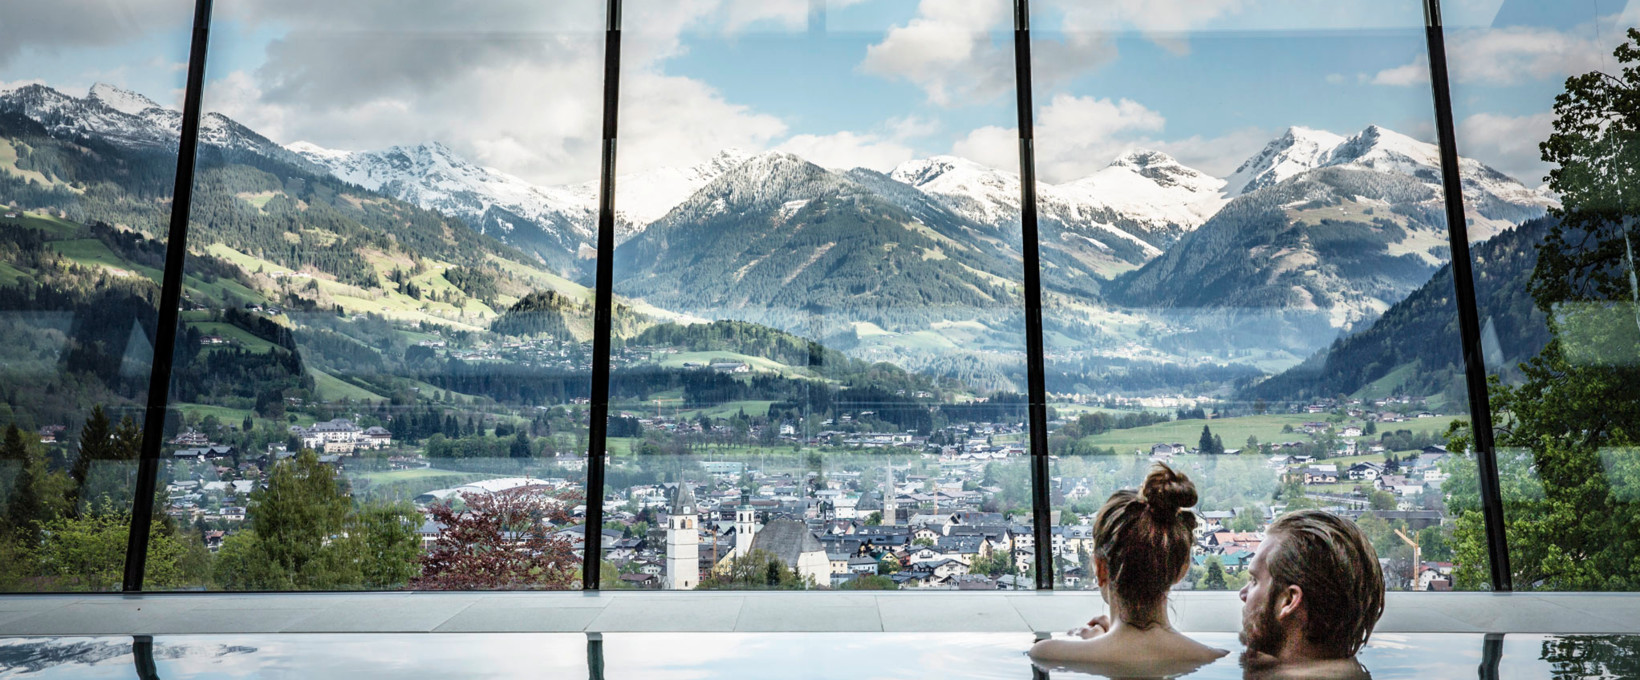 Pool with landscape panorama | Hotel Schloss Lebenberg in Tyrol